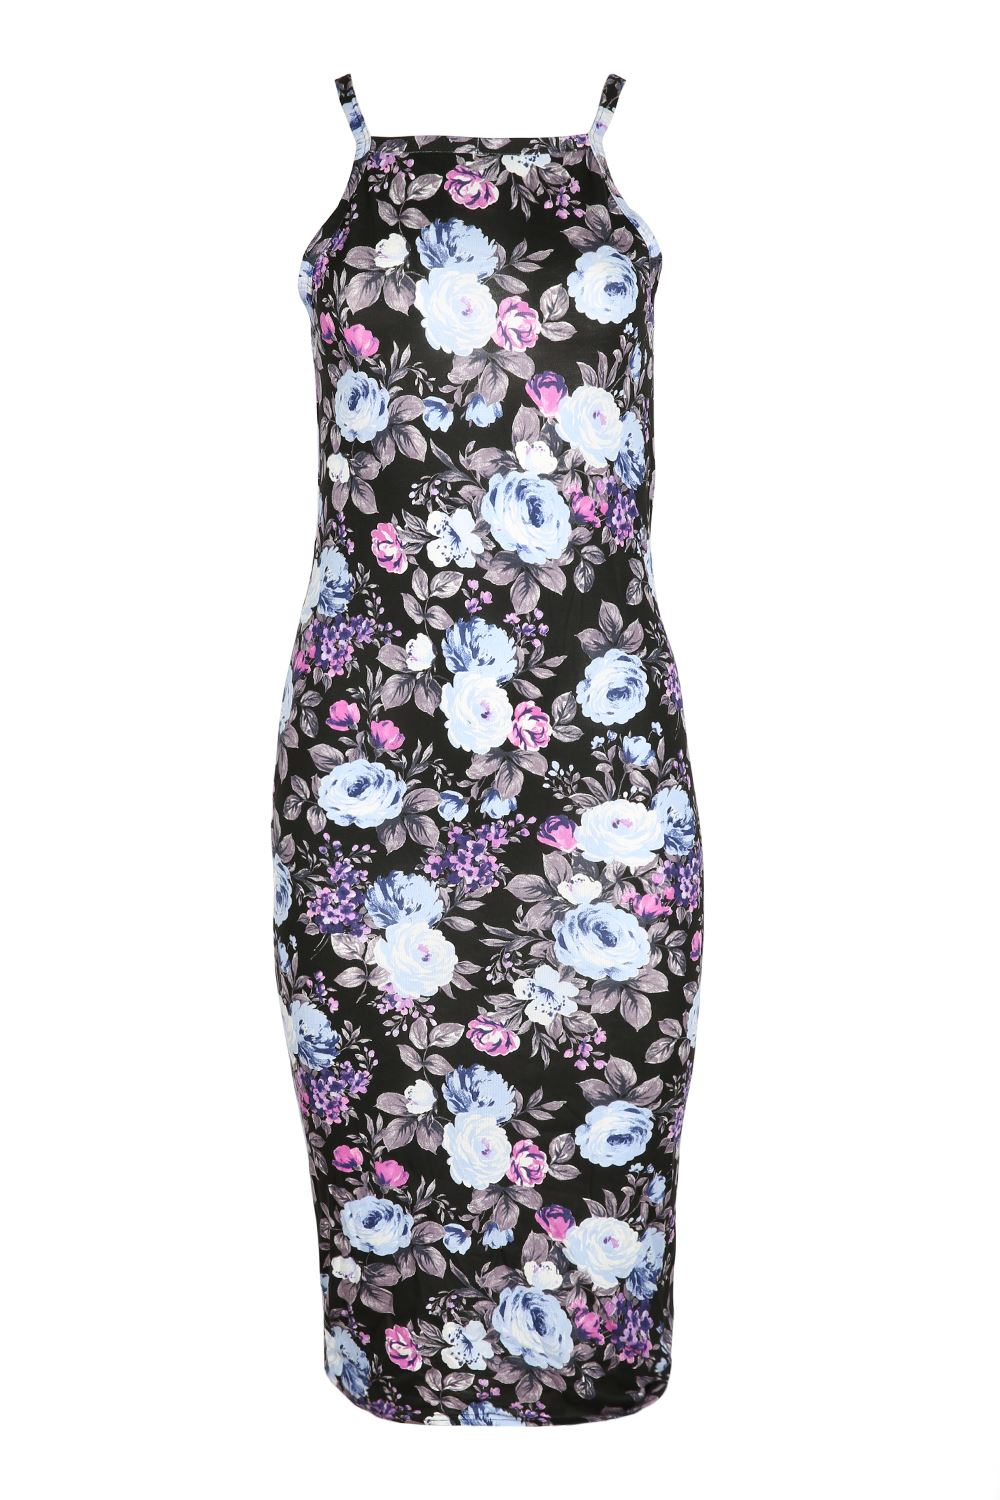 Womens Floral Flower High Neck Bodycon Dress Ladies Thin ...